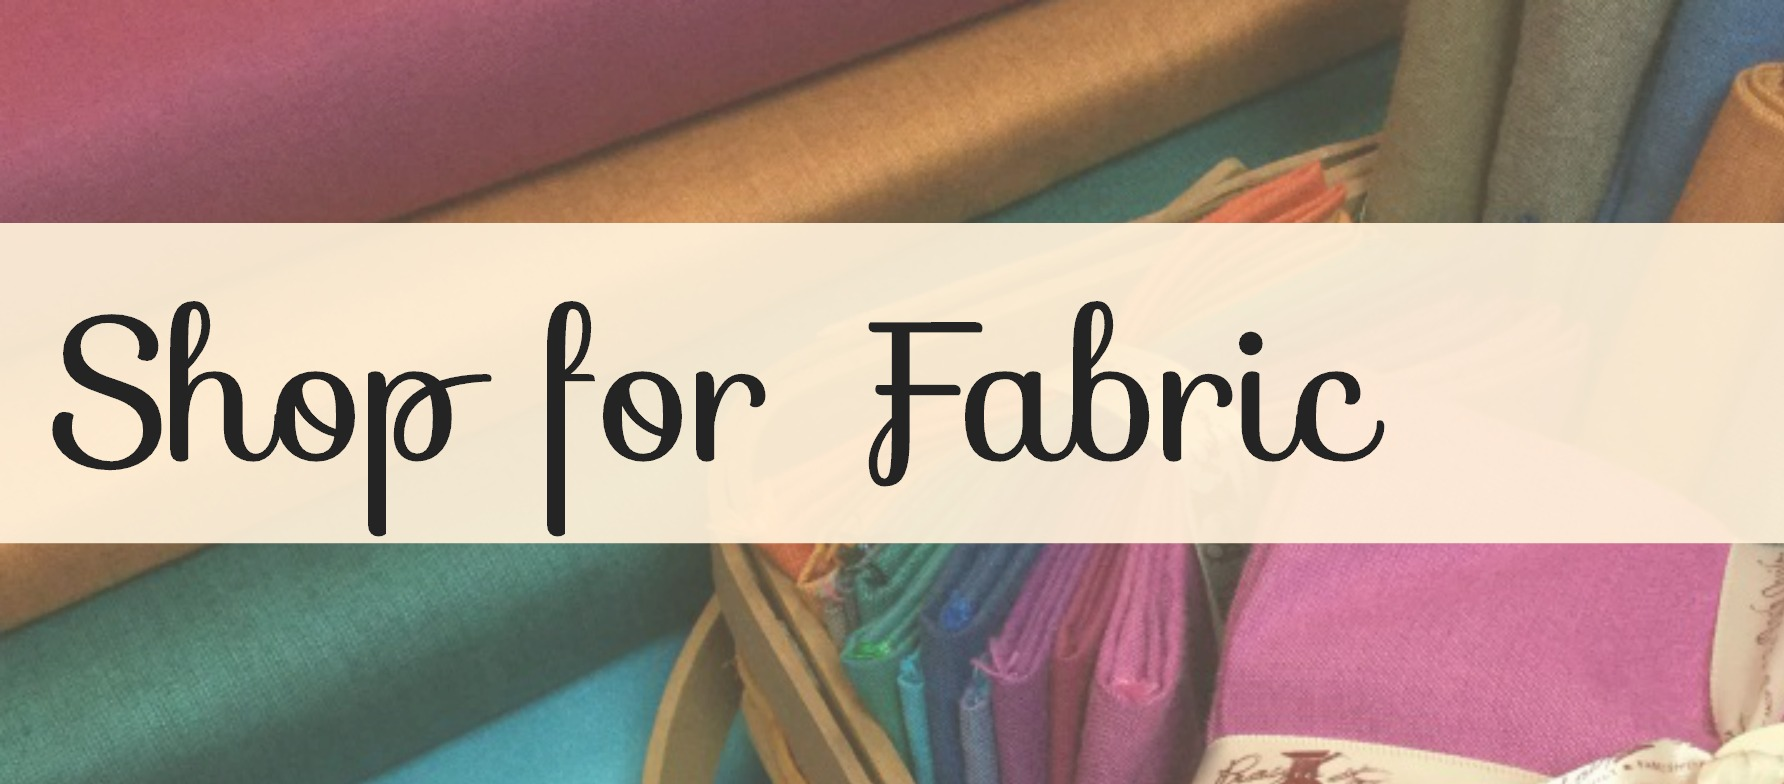 Shop for Fabric banner.jpg